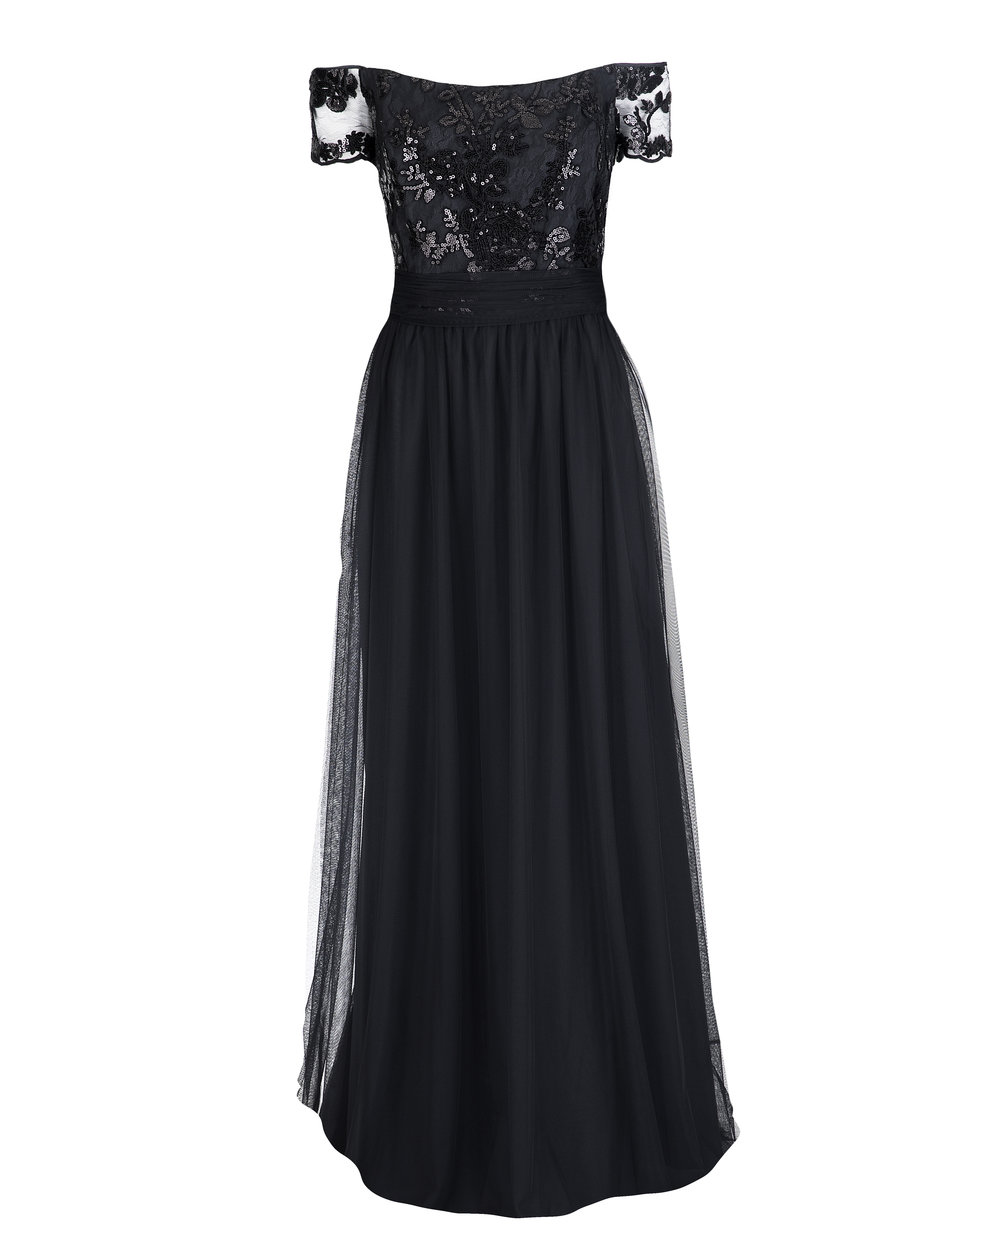 Copy of Amsale Ireland GB039 Black Sequin Lace